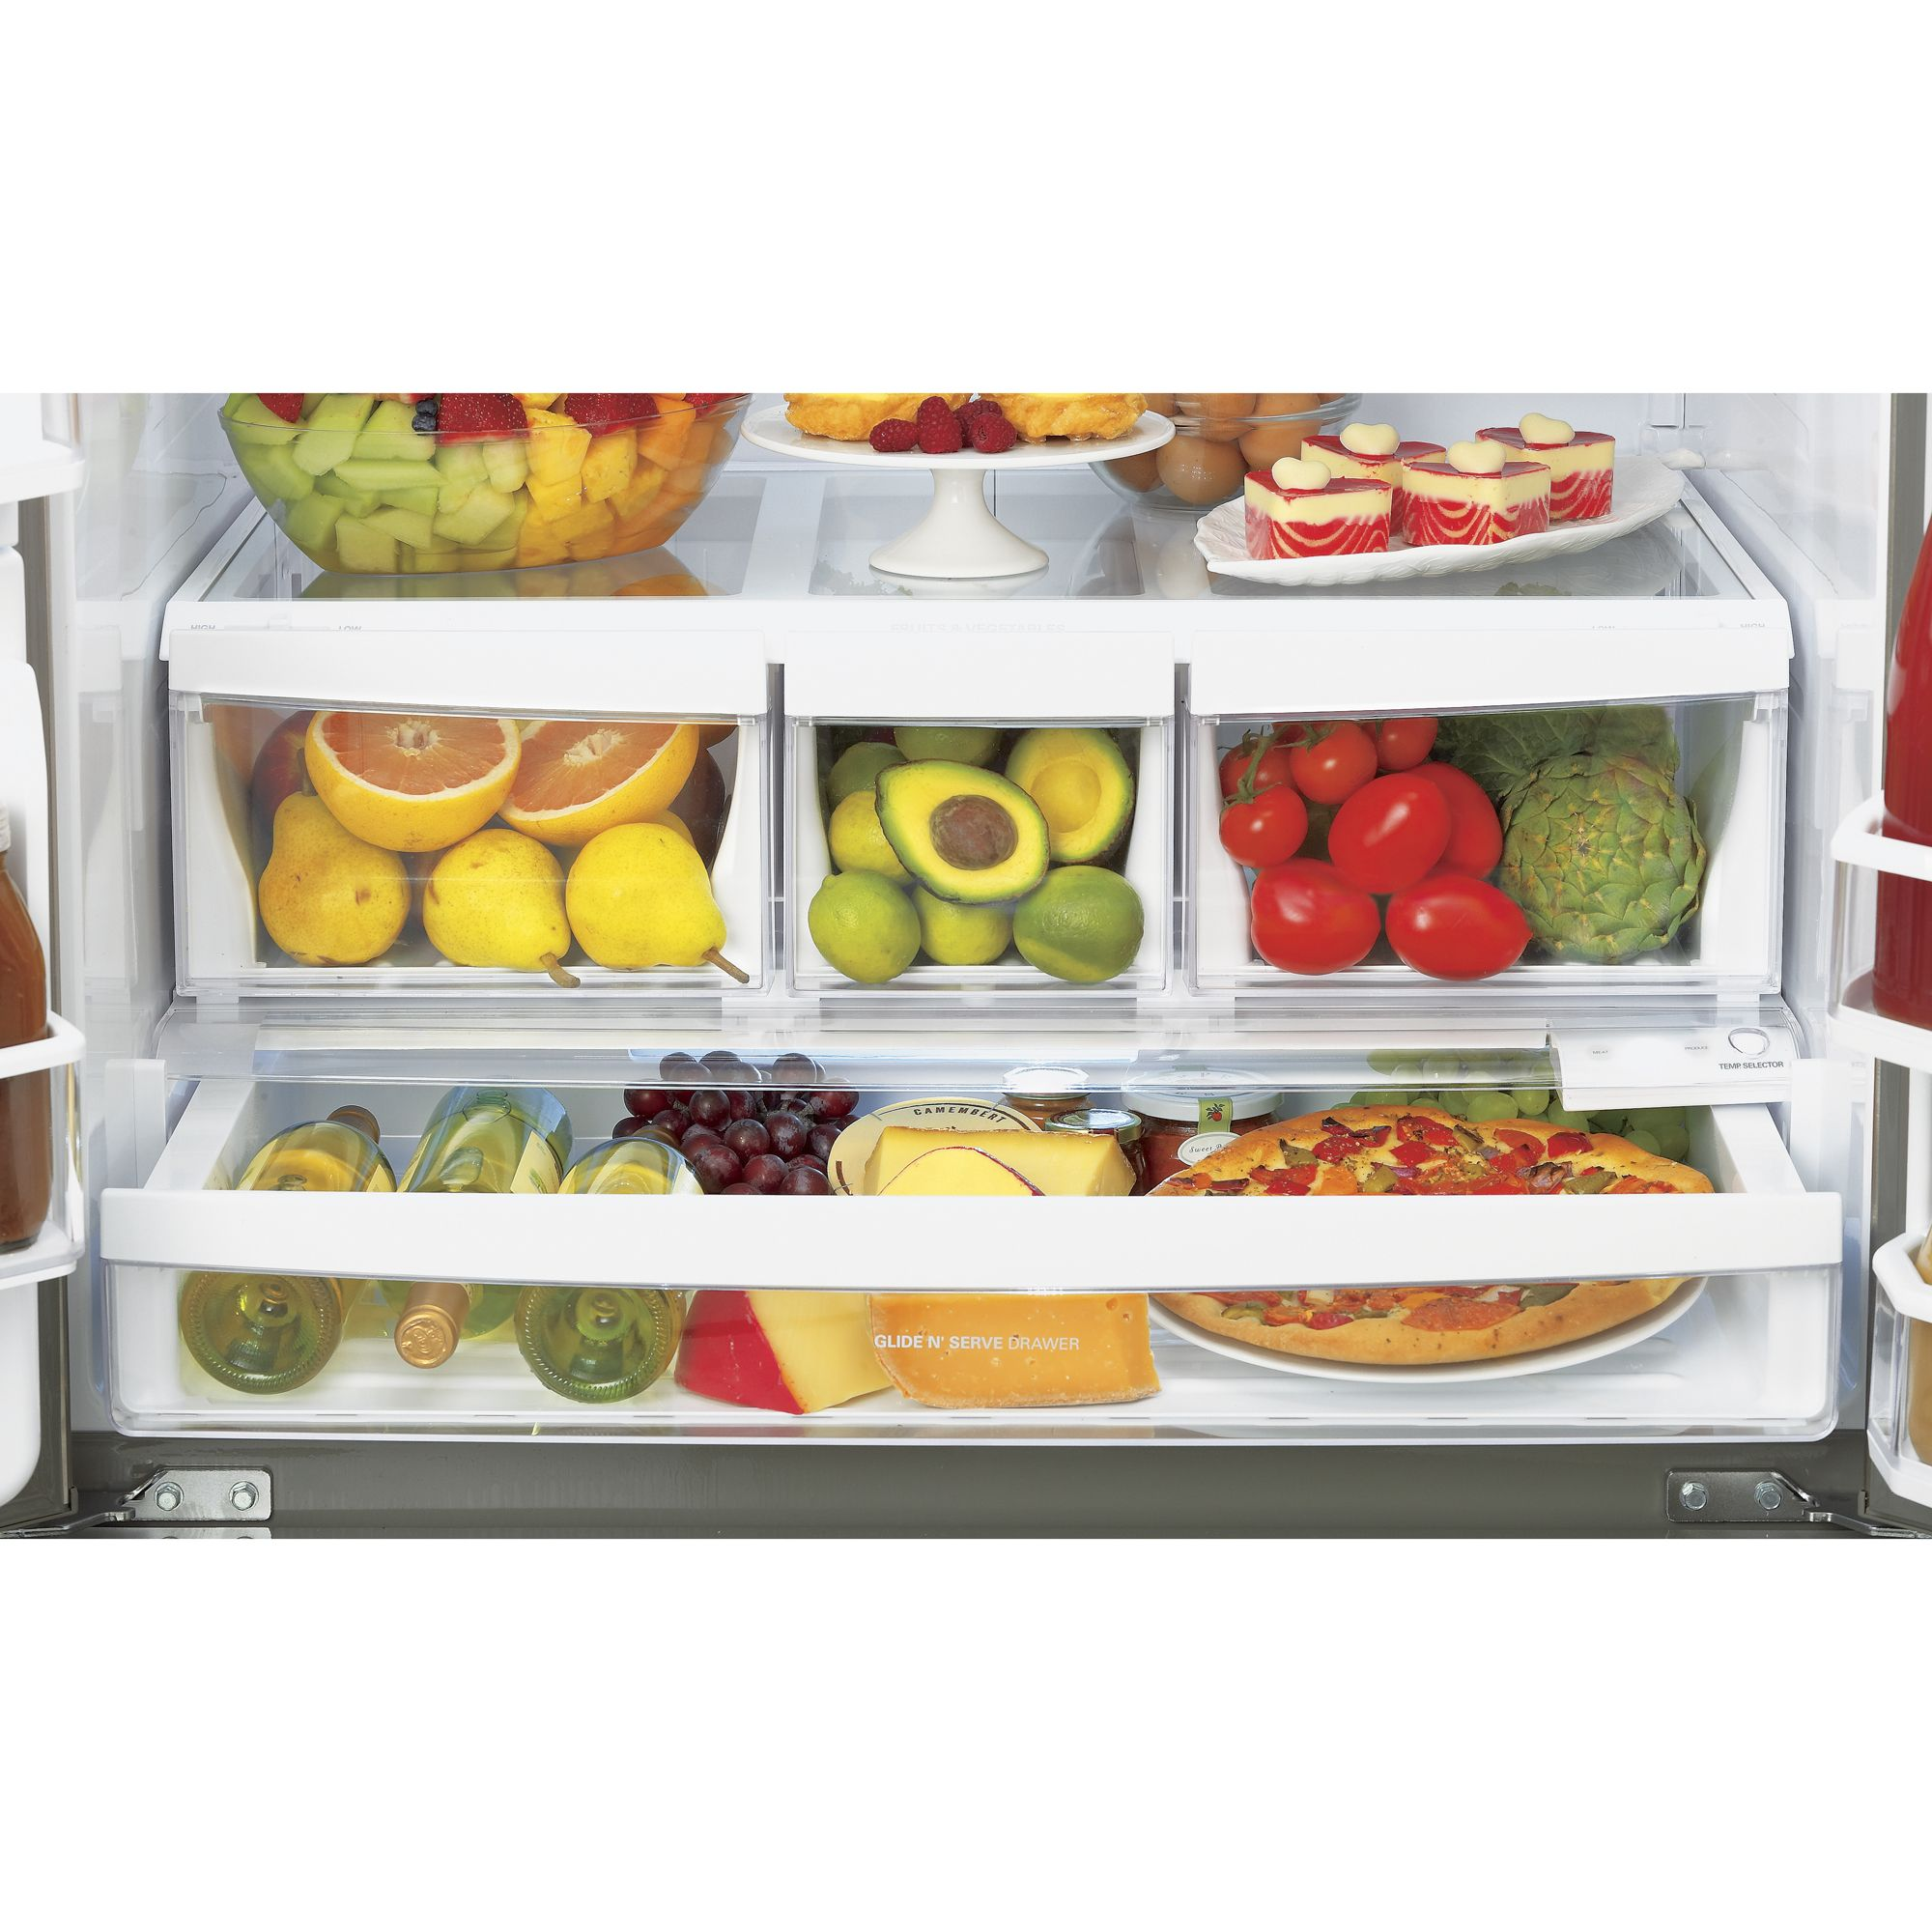 LG 27.5 cu. ft.  French Door Bottom-Freezer Refrigerator